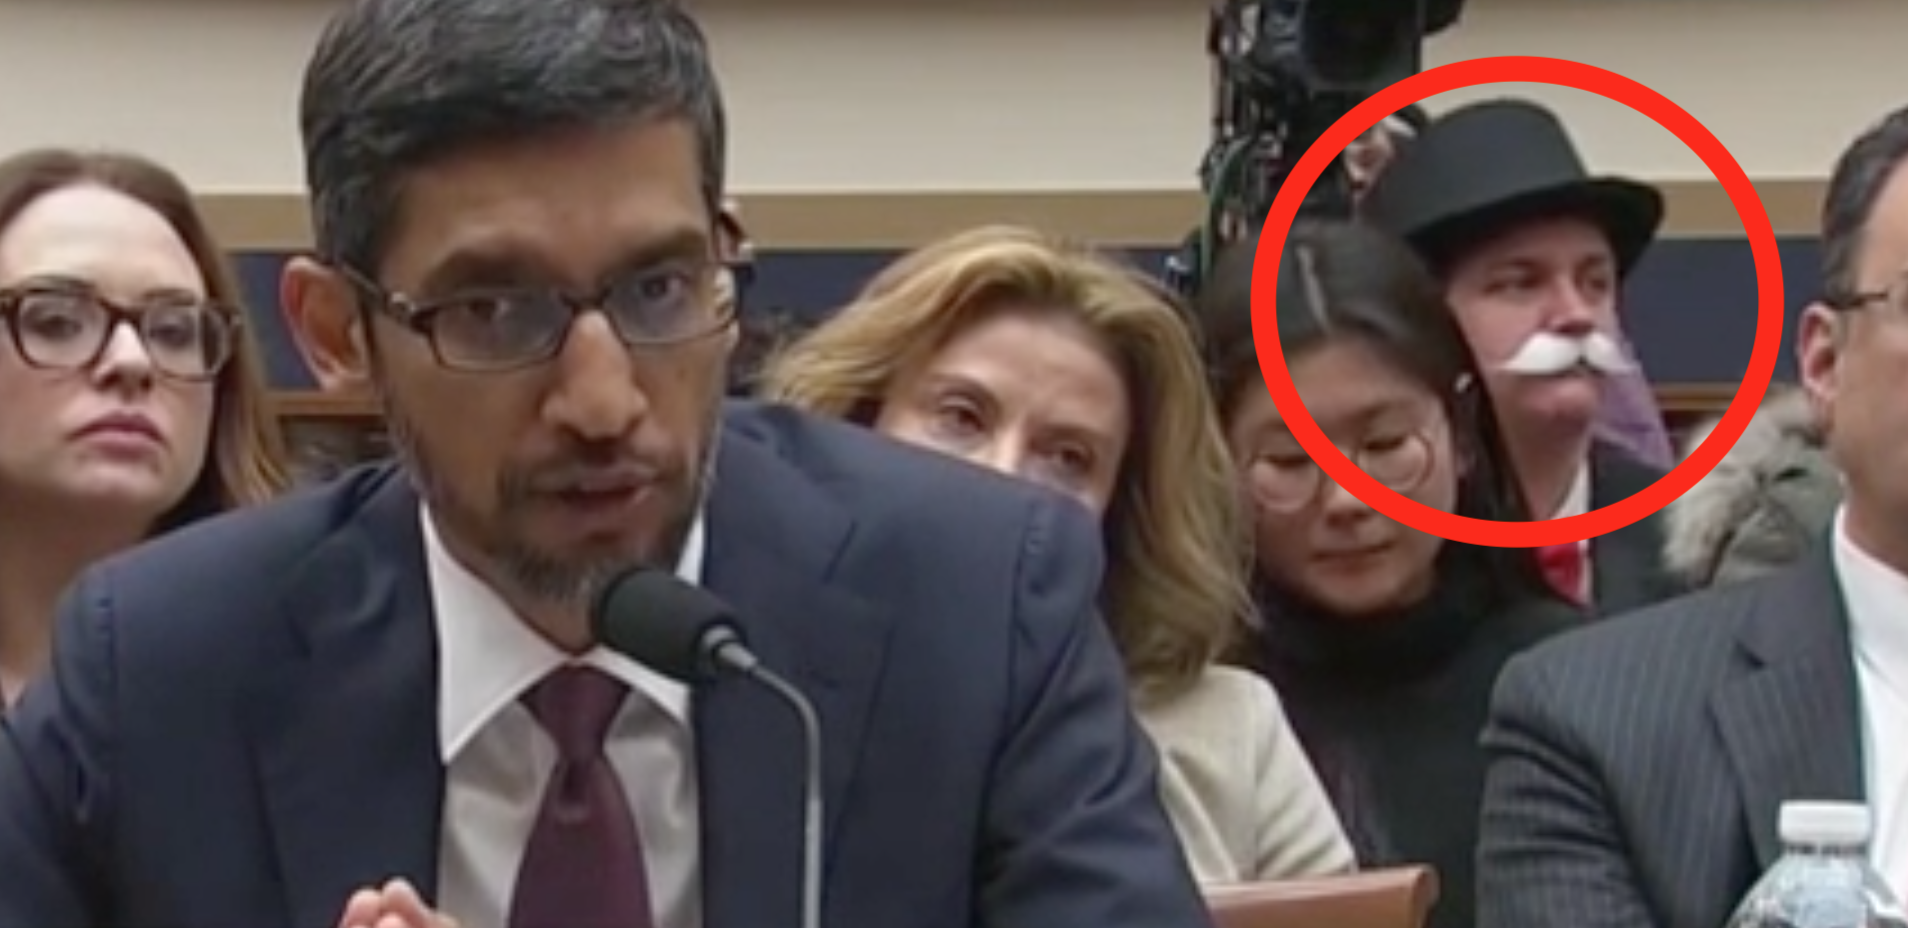 'Monopoly Man' Shows Up To Protest Google At Congressional Hearing